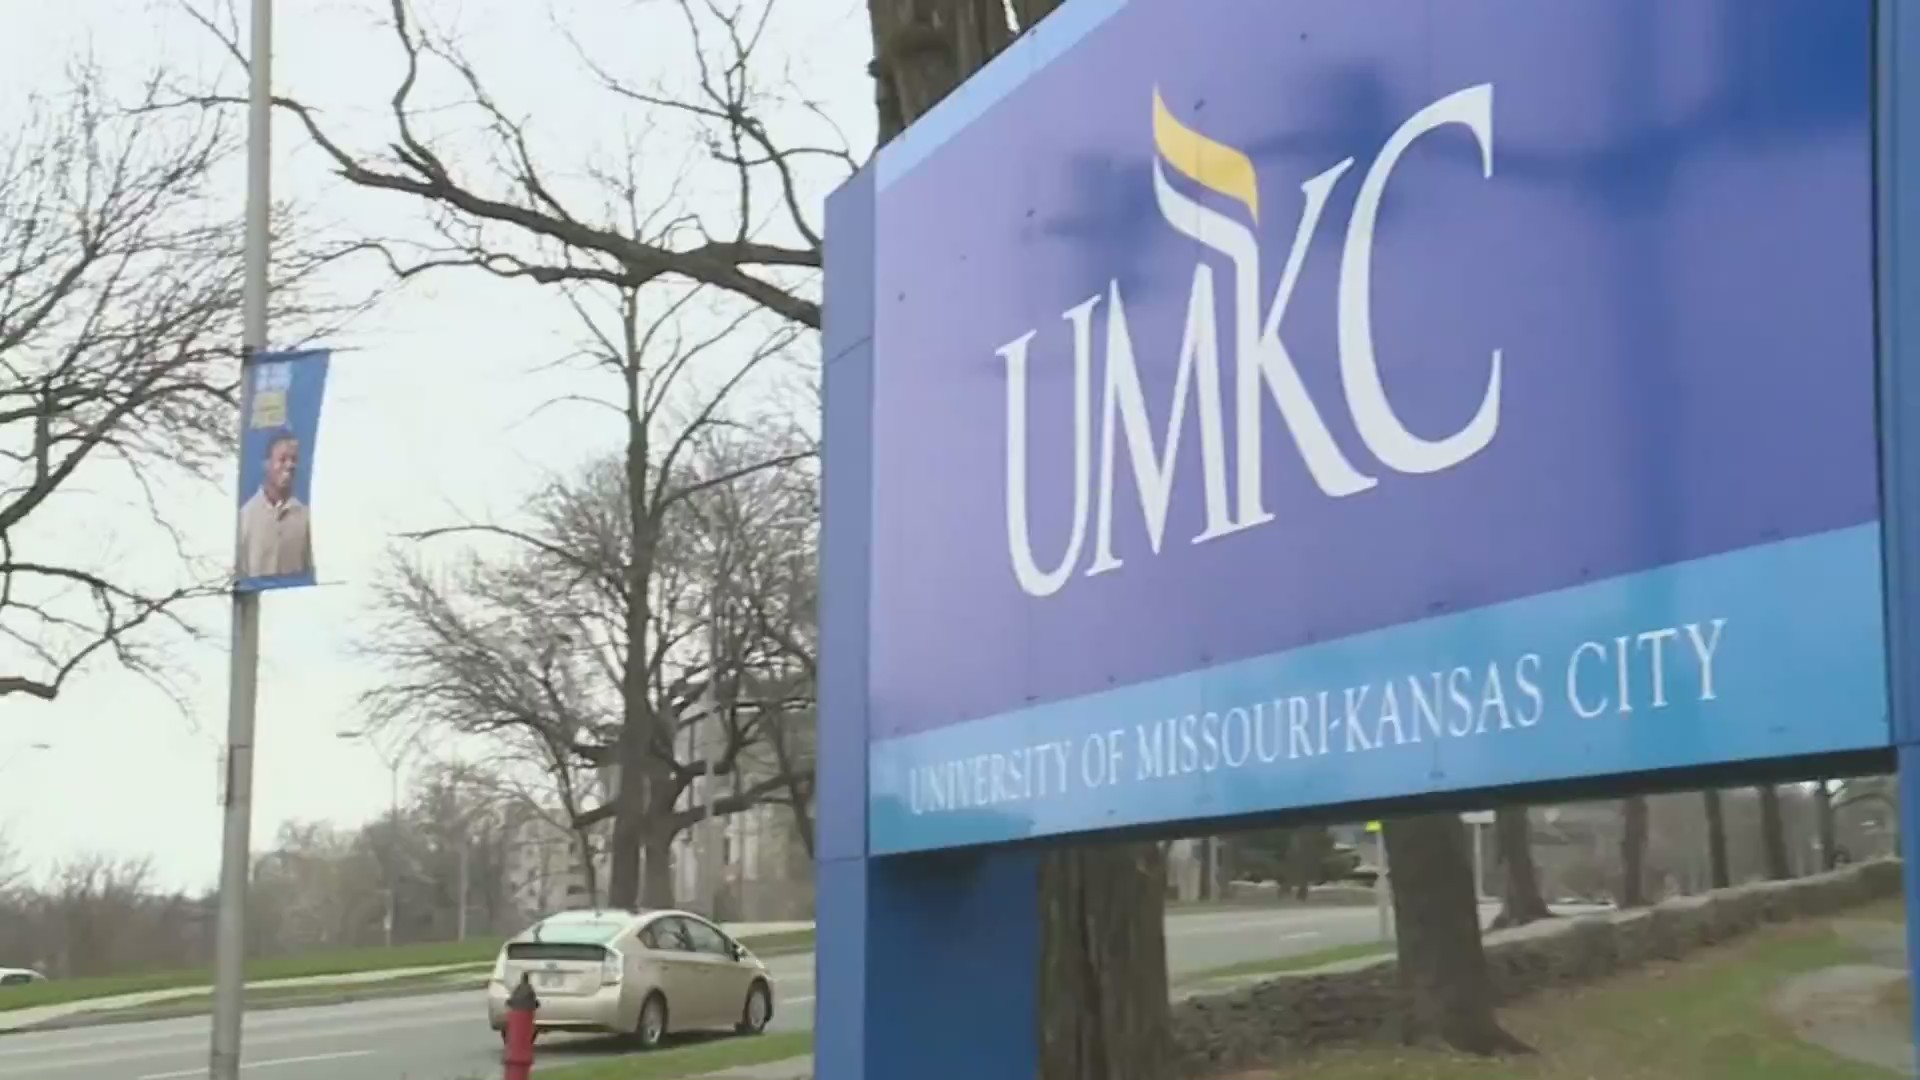 Picture of UMKC sign